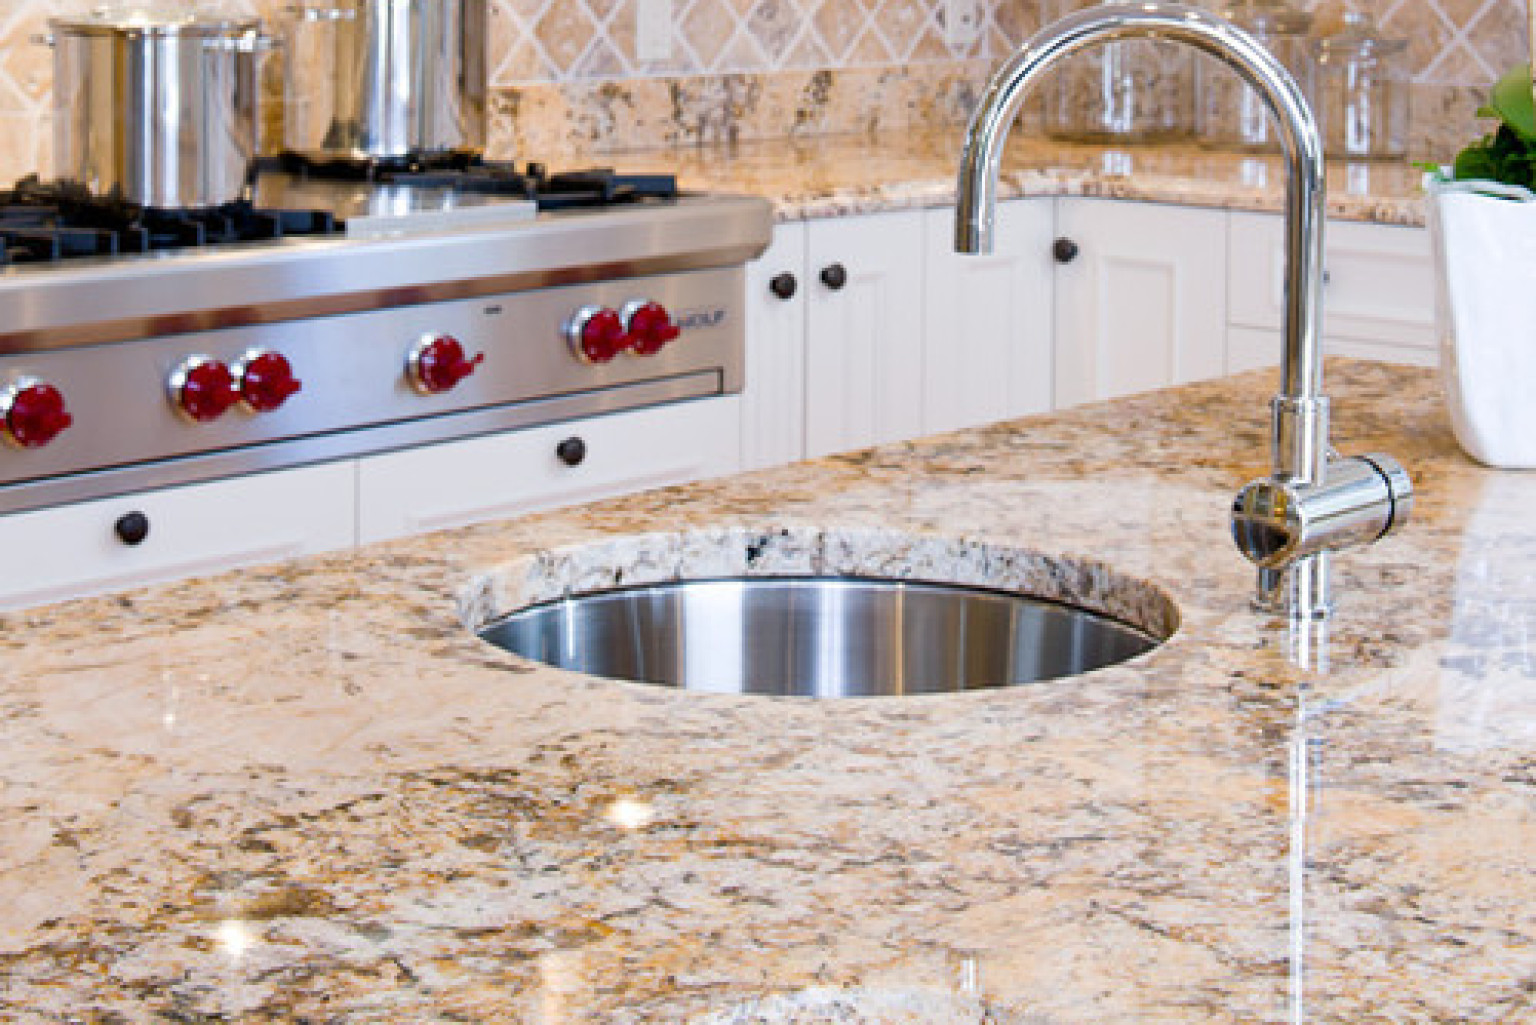 kitchen countertops buying guide n kitchen countertop Kitchen Countertops Buying Guide The Ins And Outs Of The Best Options On The Market PHOTOS HuffPost